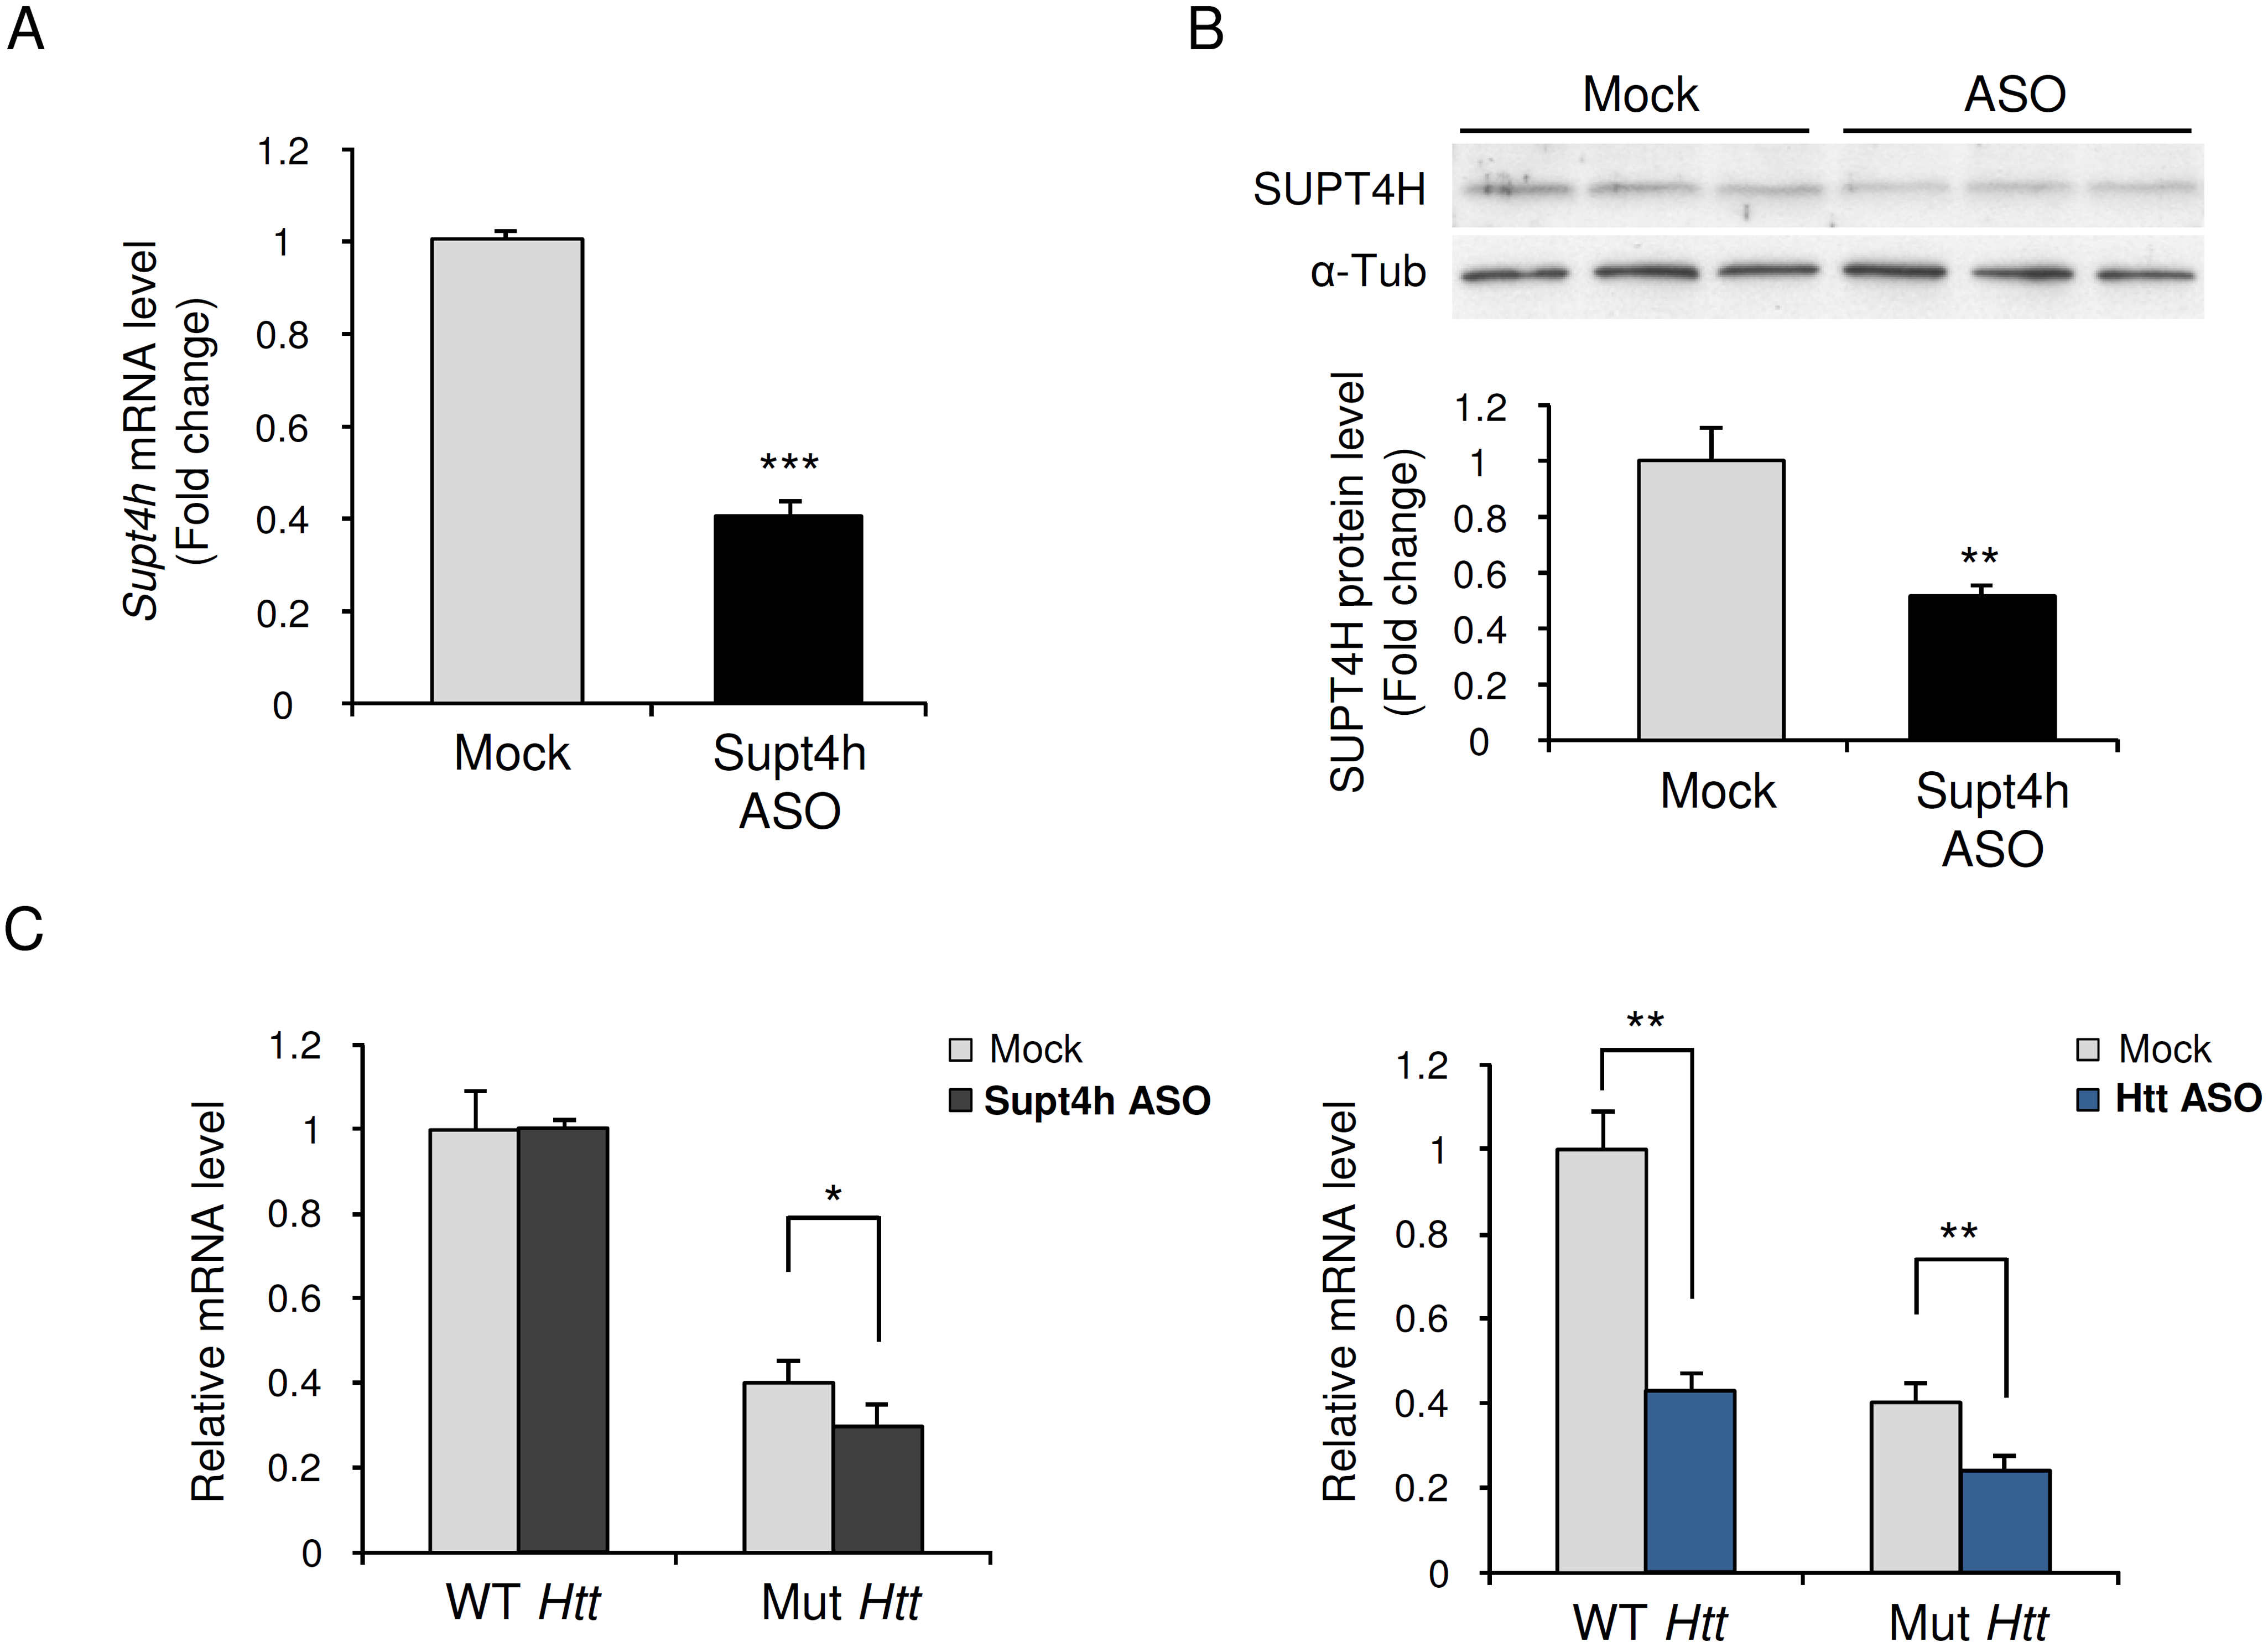 Effect of down regulation by Supt4h ASO on expression of mutant and wild-type <i>Htt</i> alleles in zQ175 HD mice.